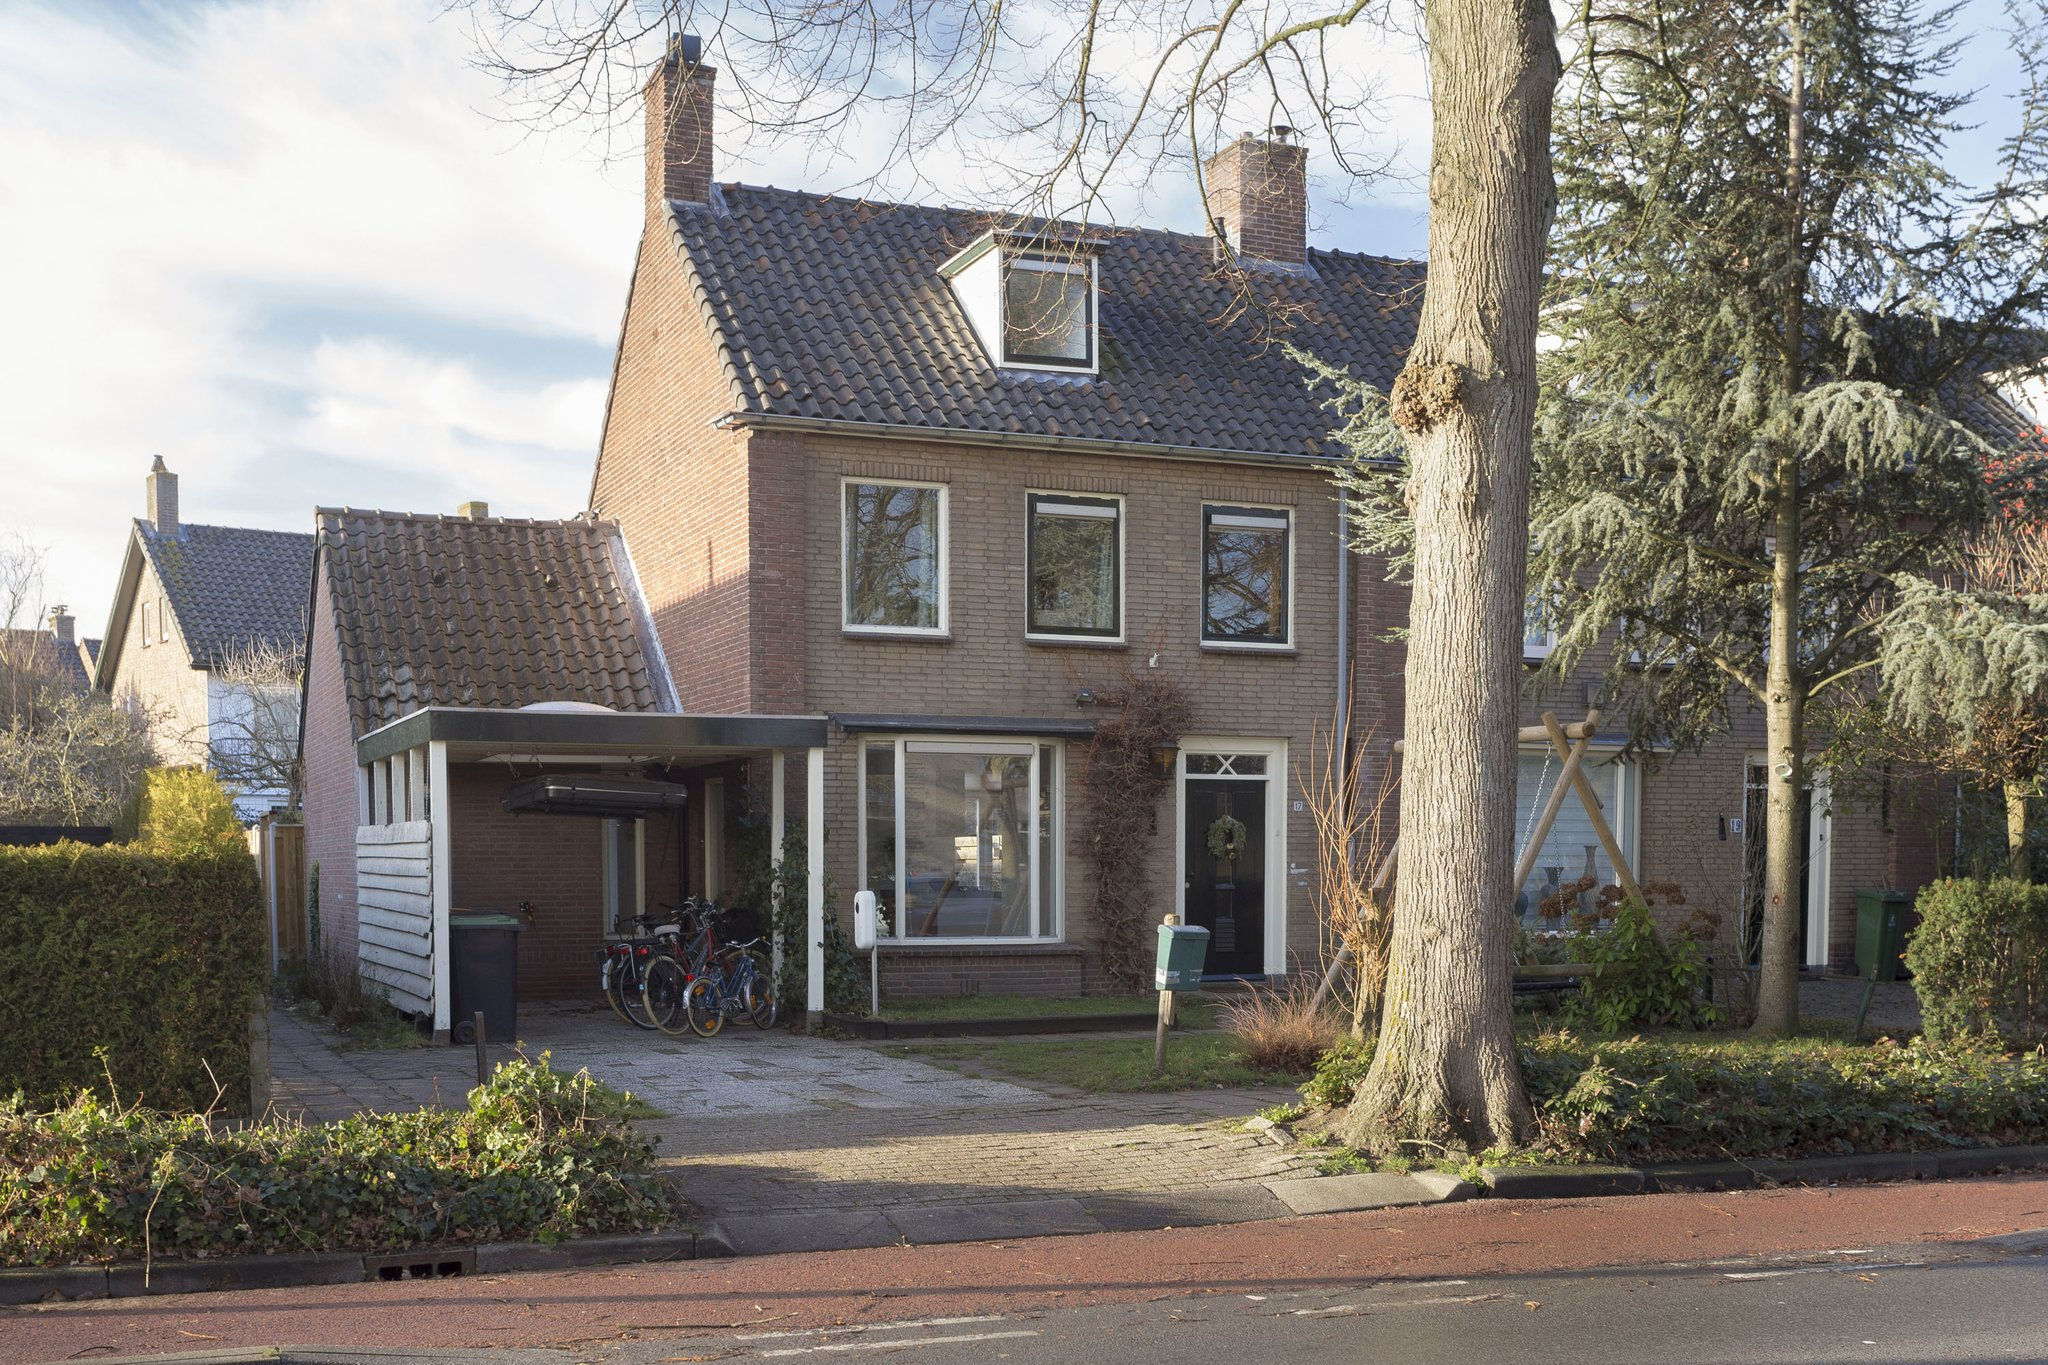 deventer-van-oldenielstraat-4309136-foto-1.jpg